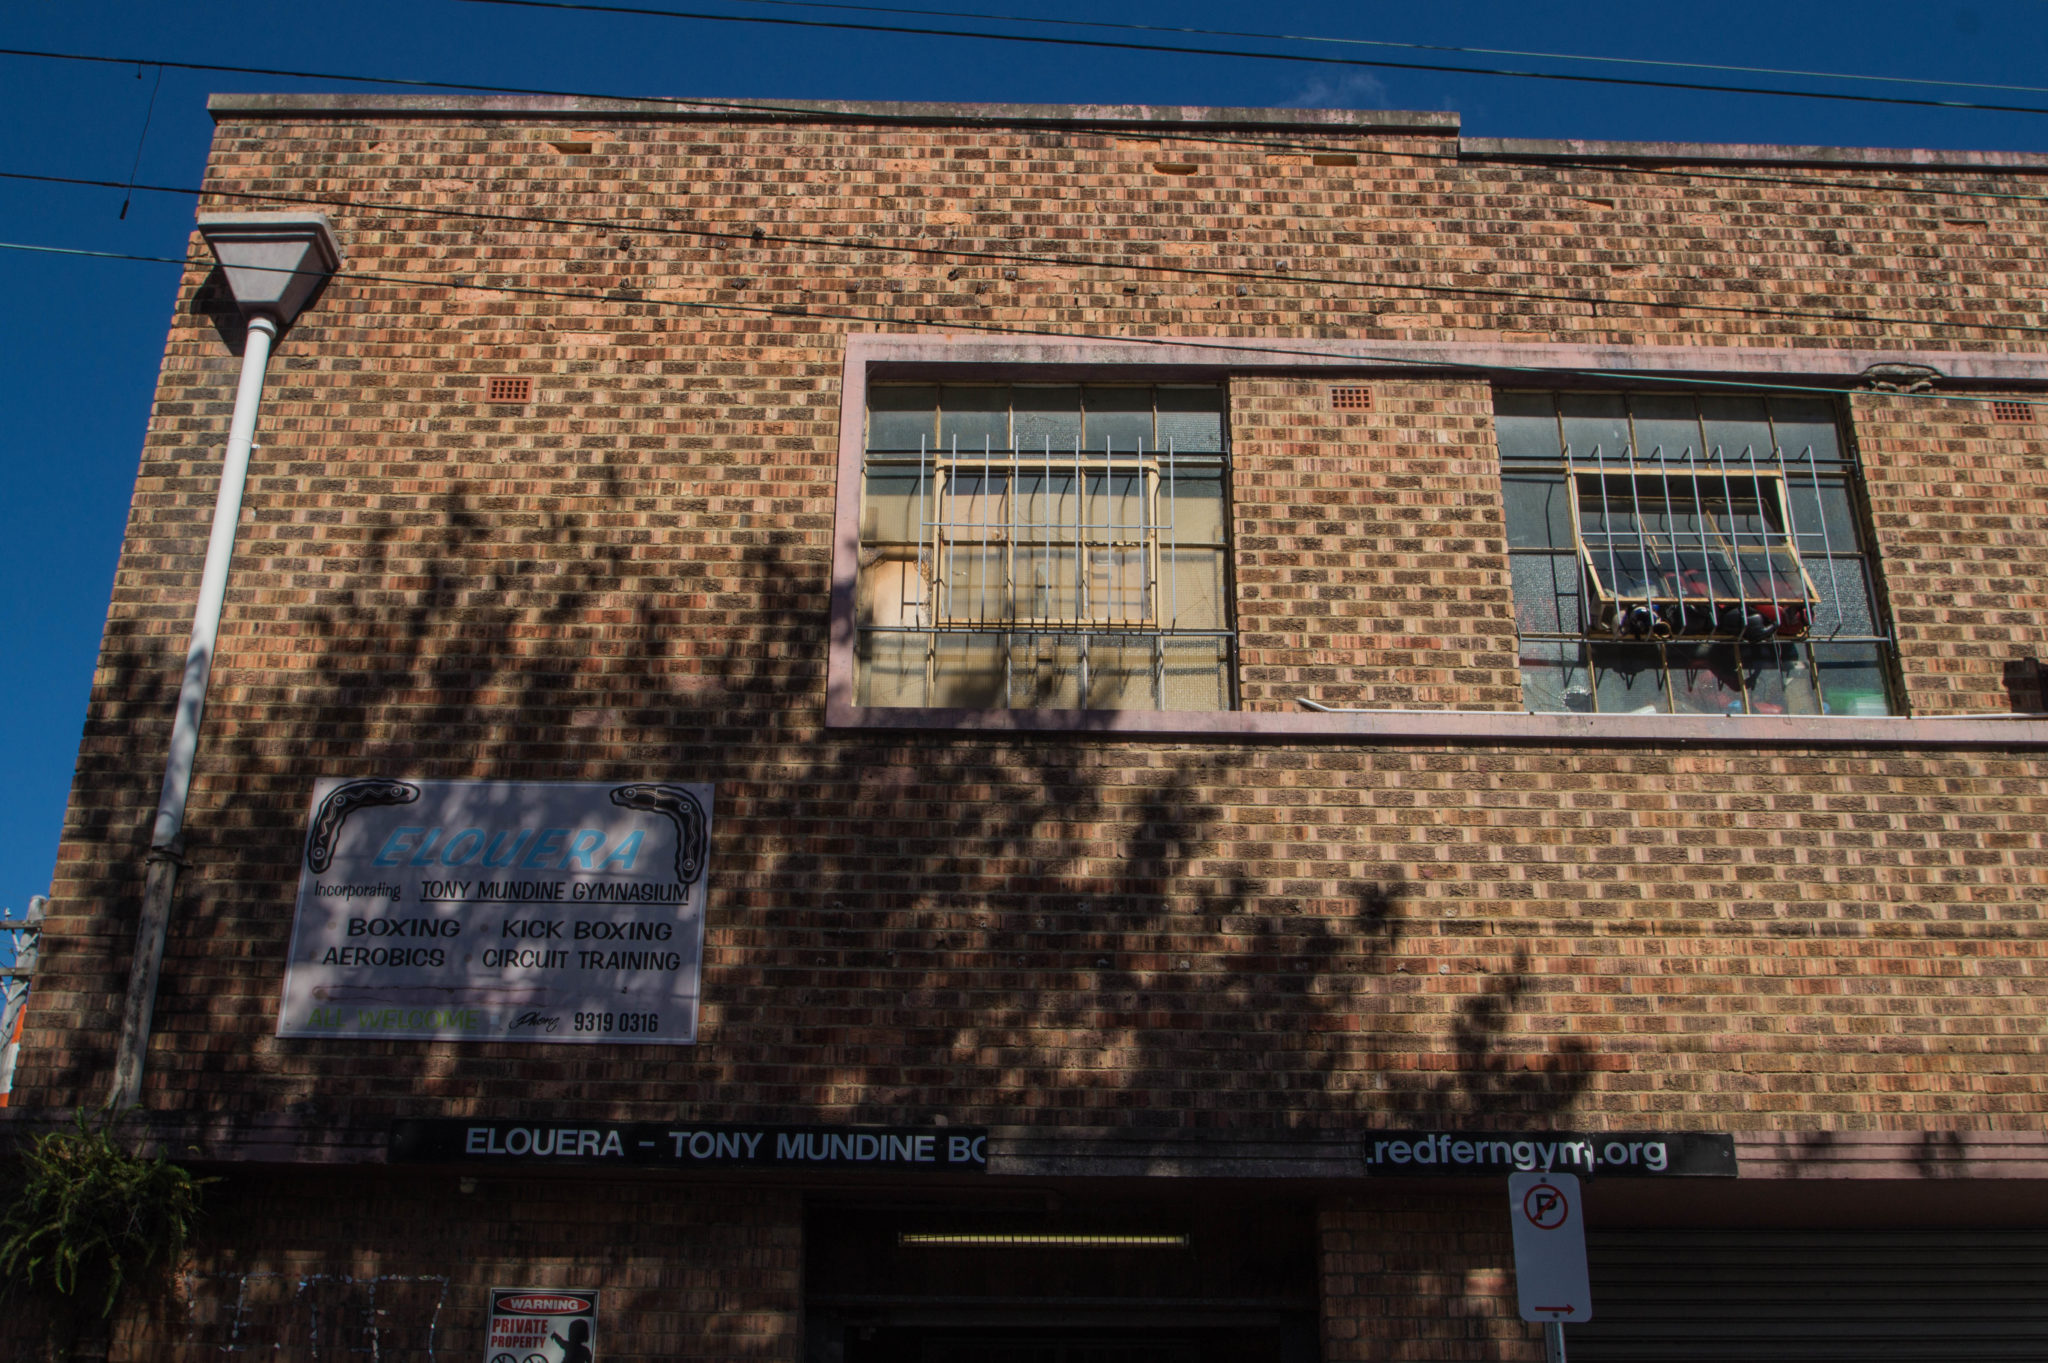 Redfern Sydney: Tony Mundine's Boxing School